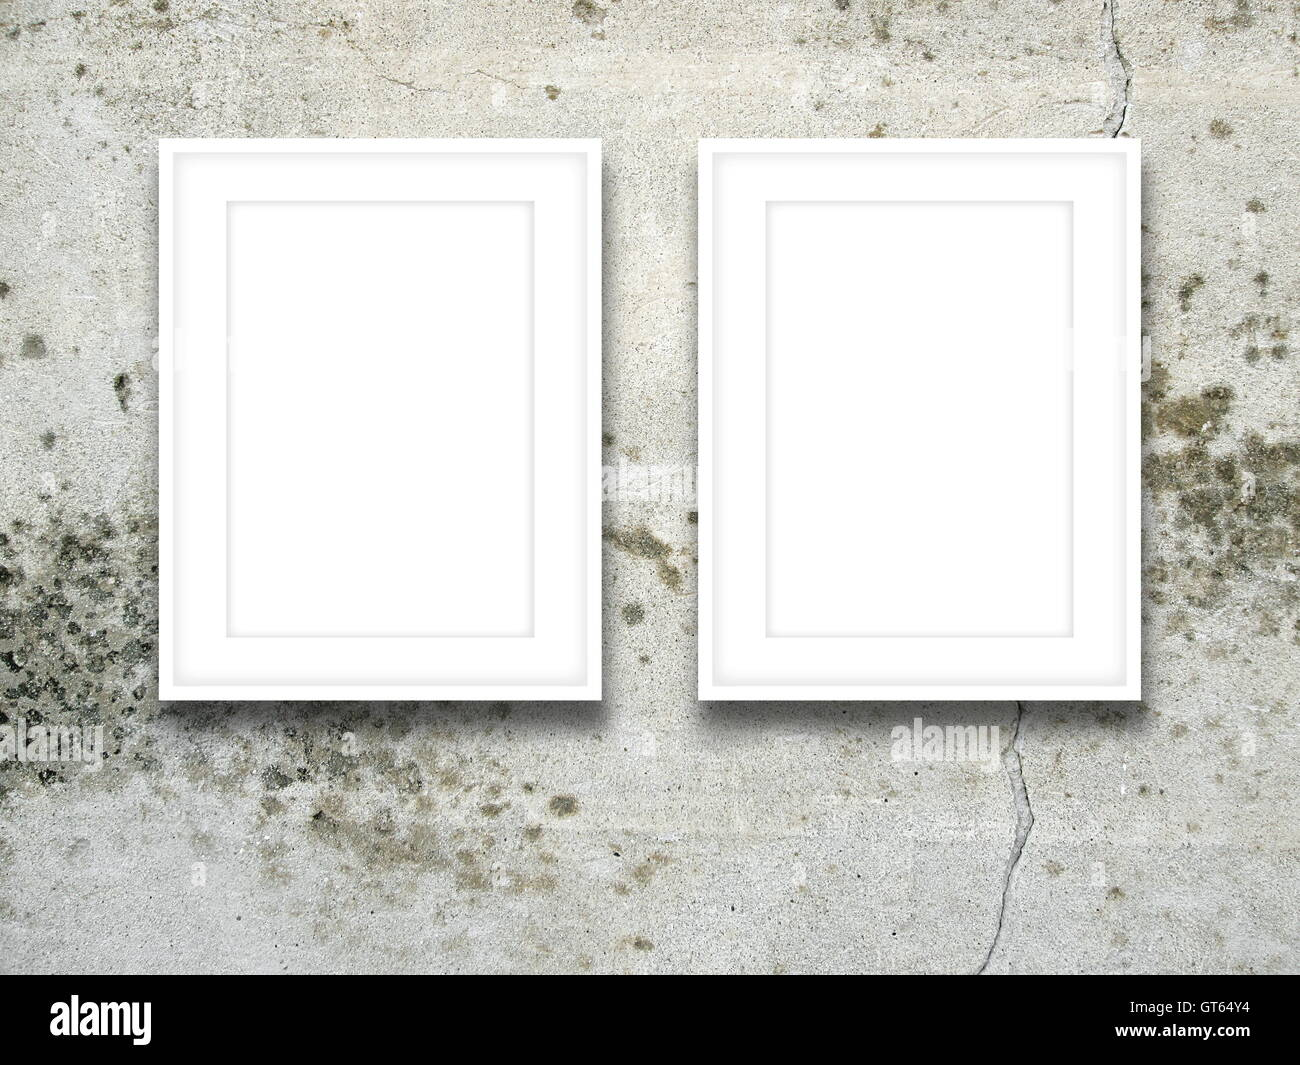 Close-up of two blank picture frames on gray cracked concrete wall background - Stock Image